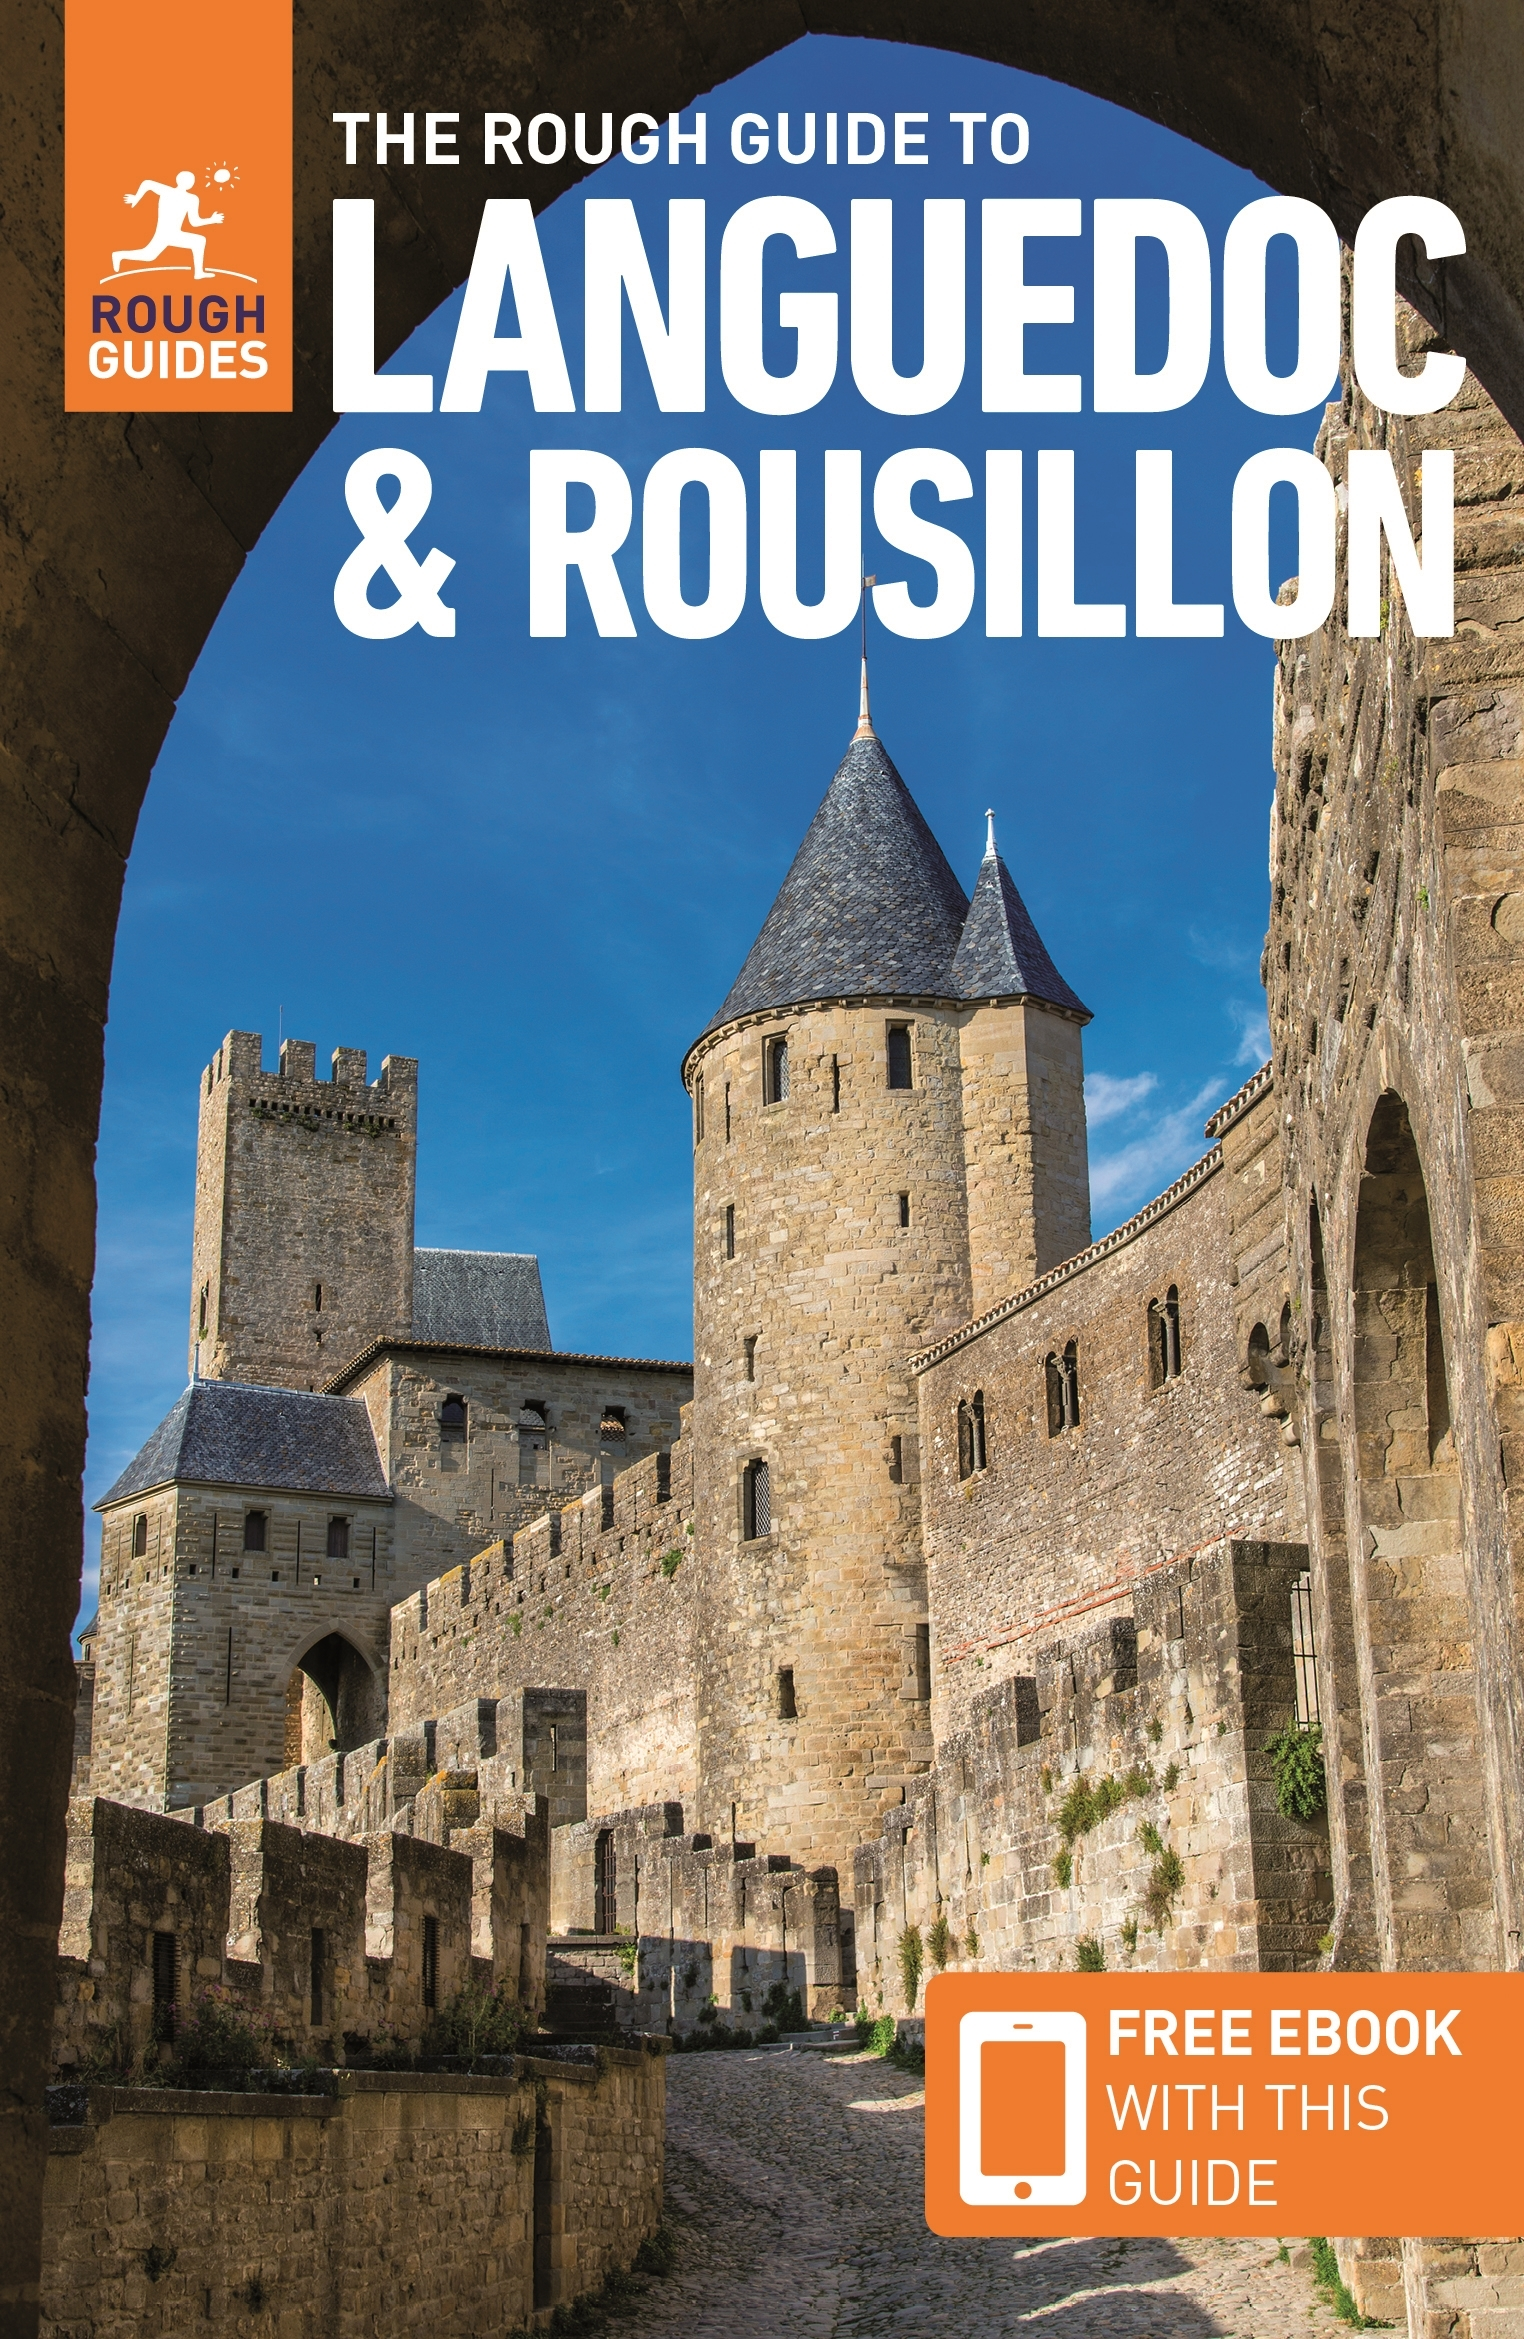 Image for The rough guide to Languedoc & Roussillon